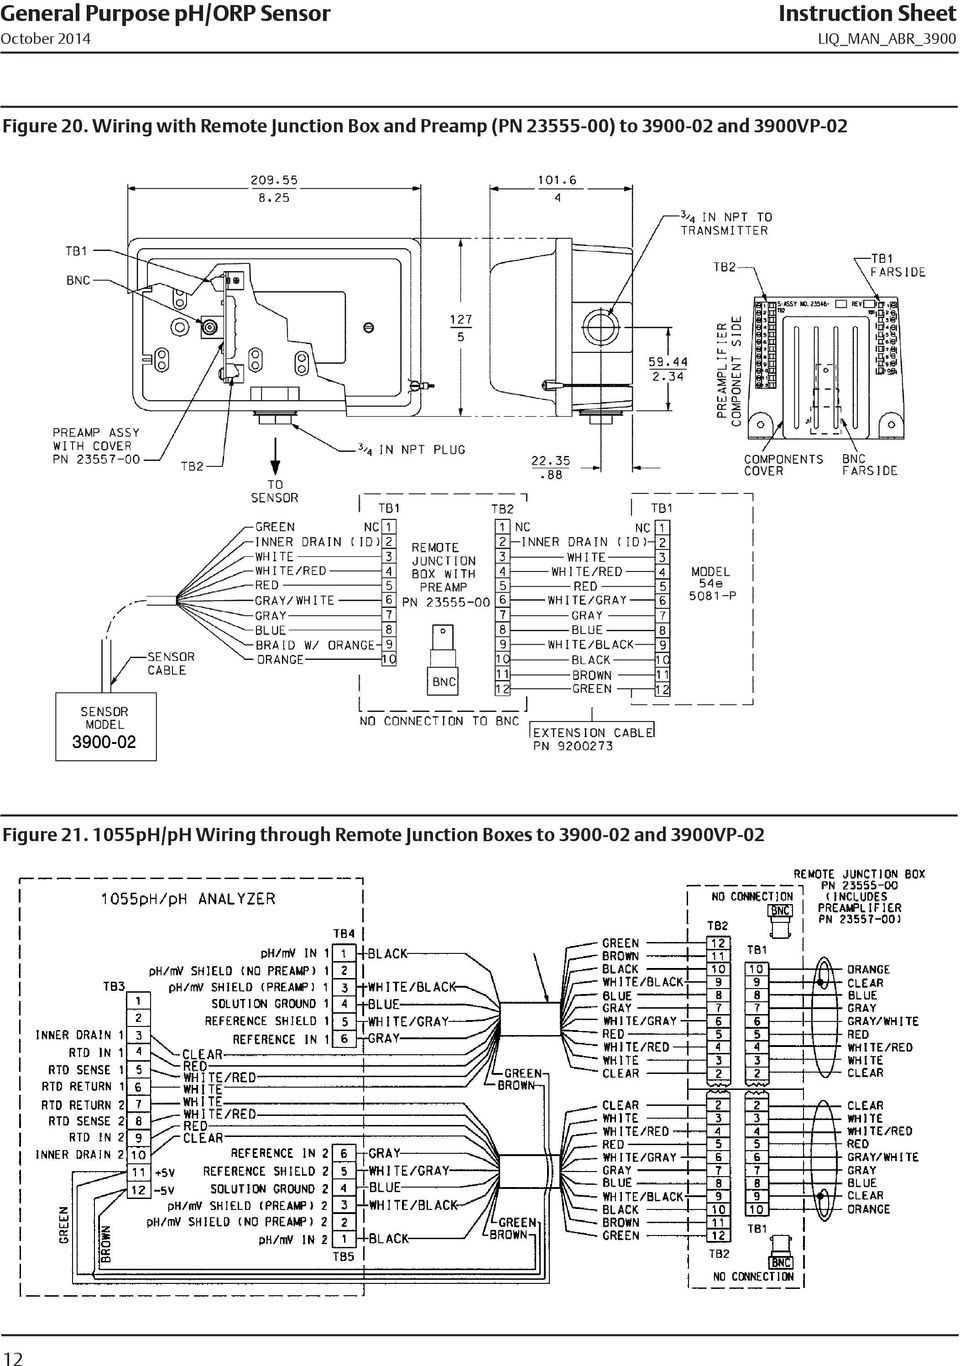 Wiring with Remote Junction Box and Preamp (PN 23555-00) to